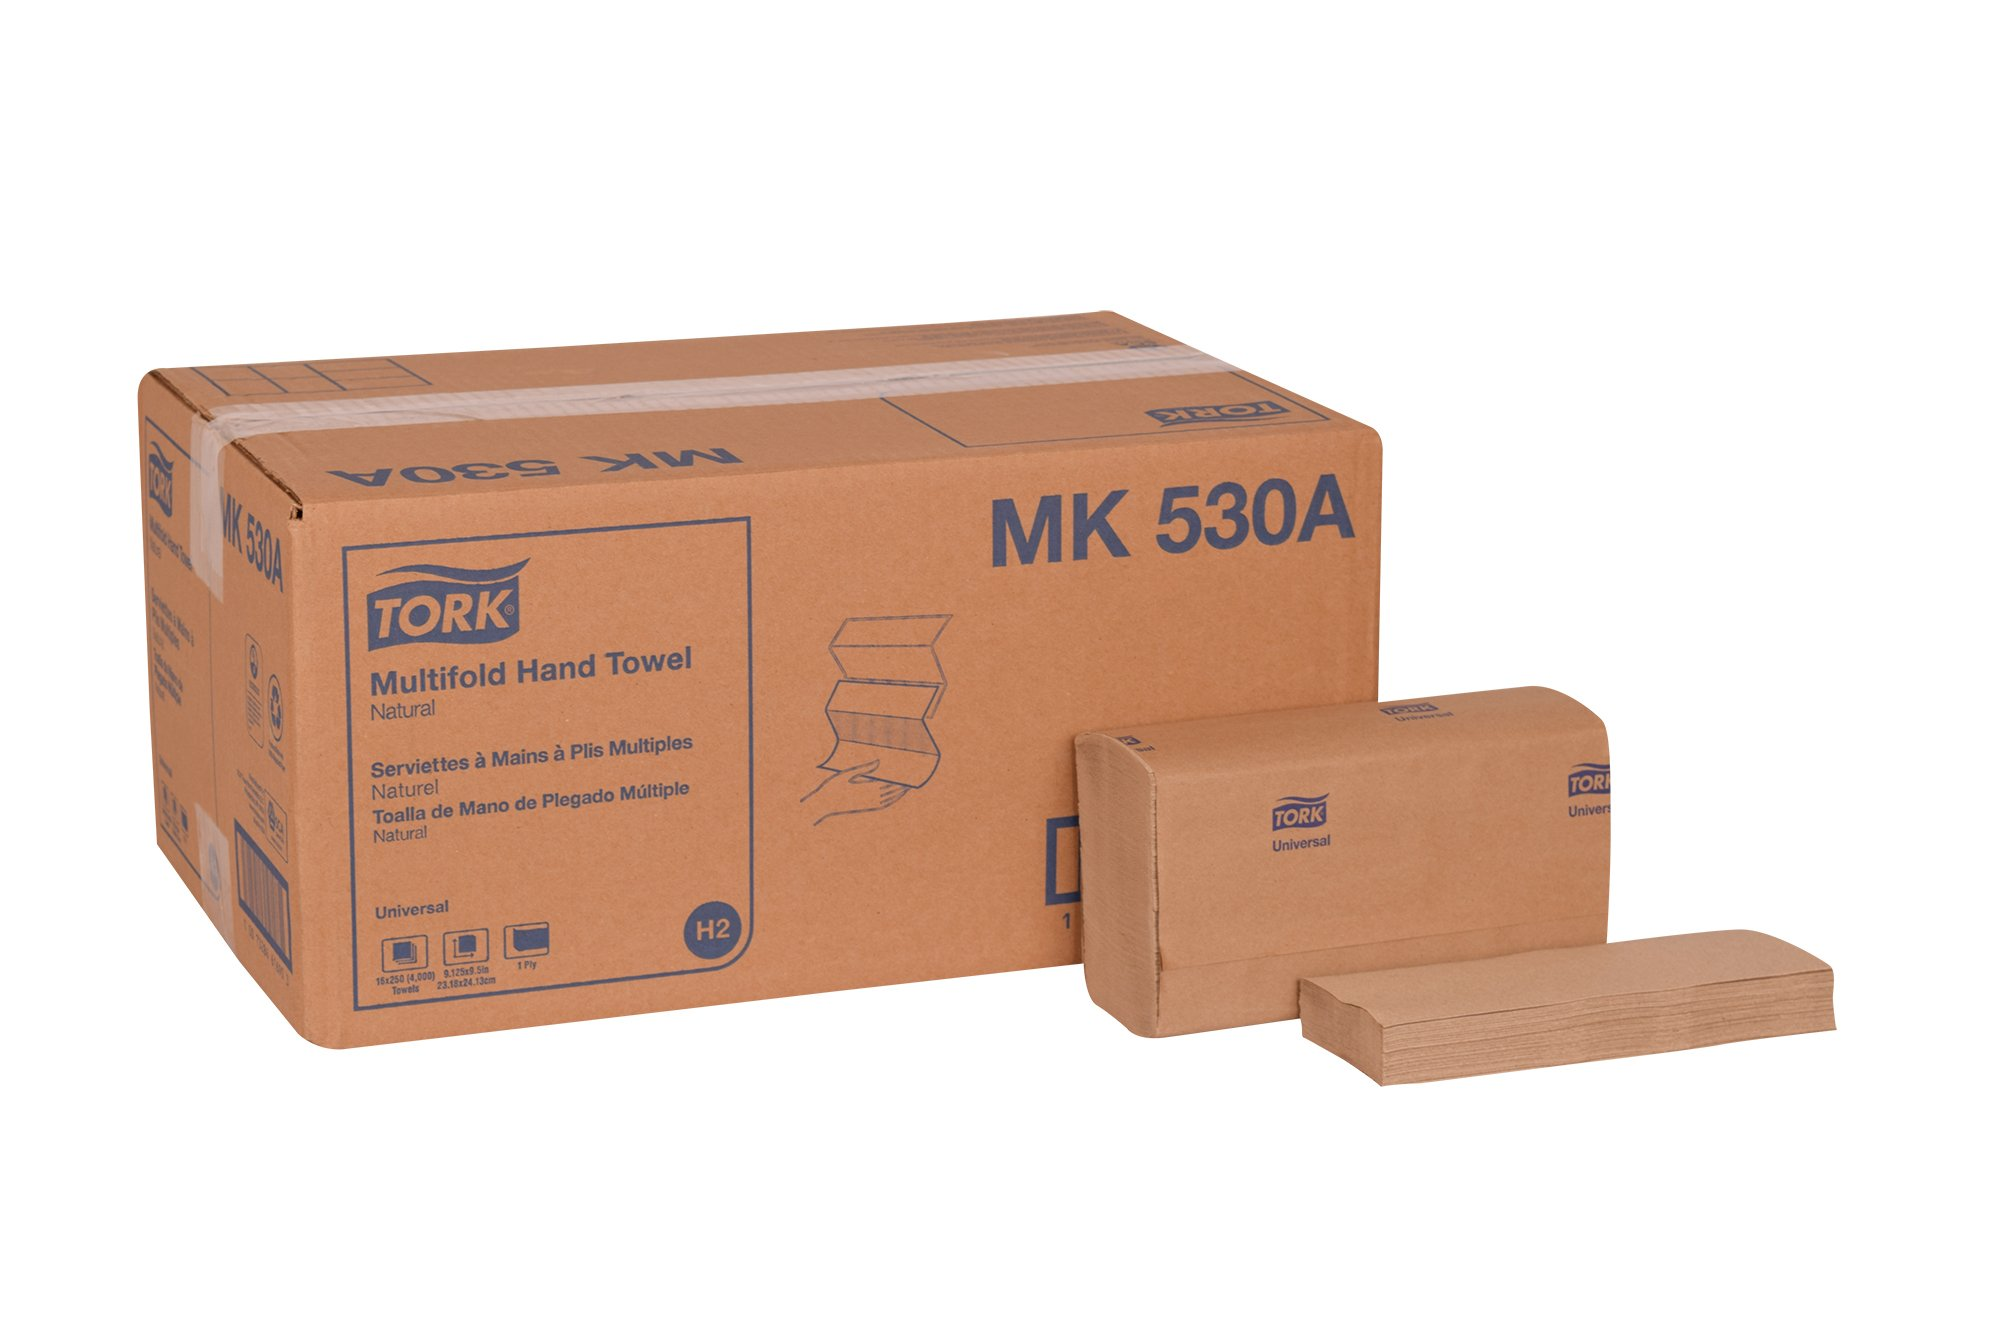 Tork Universal MK530A Multifold Paper Hand Towel, 1-Ply, 9.125'' Width x 9.5'' Length, Natural, (Case of 16 Packs, 250 per Pack, 4,000 Towels)